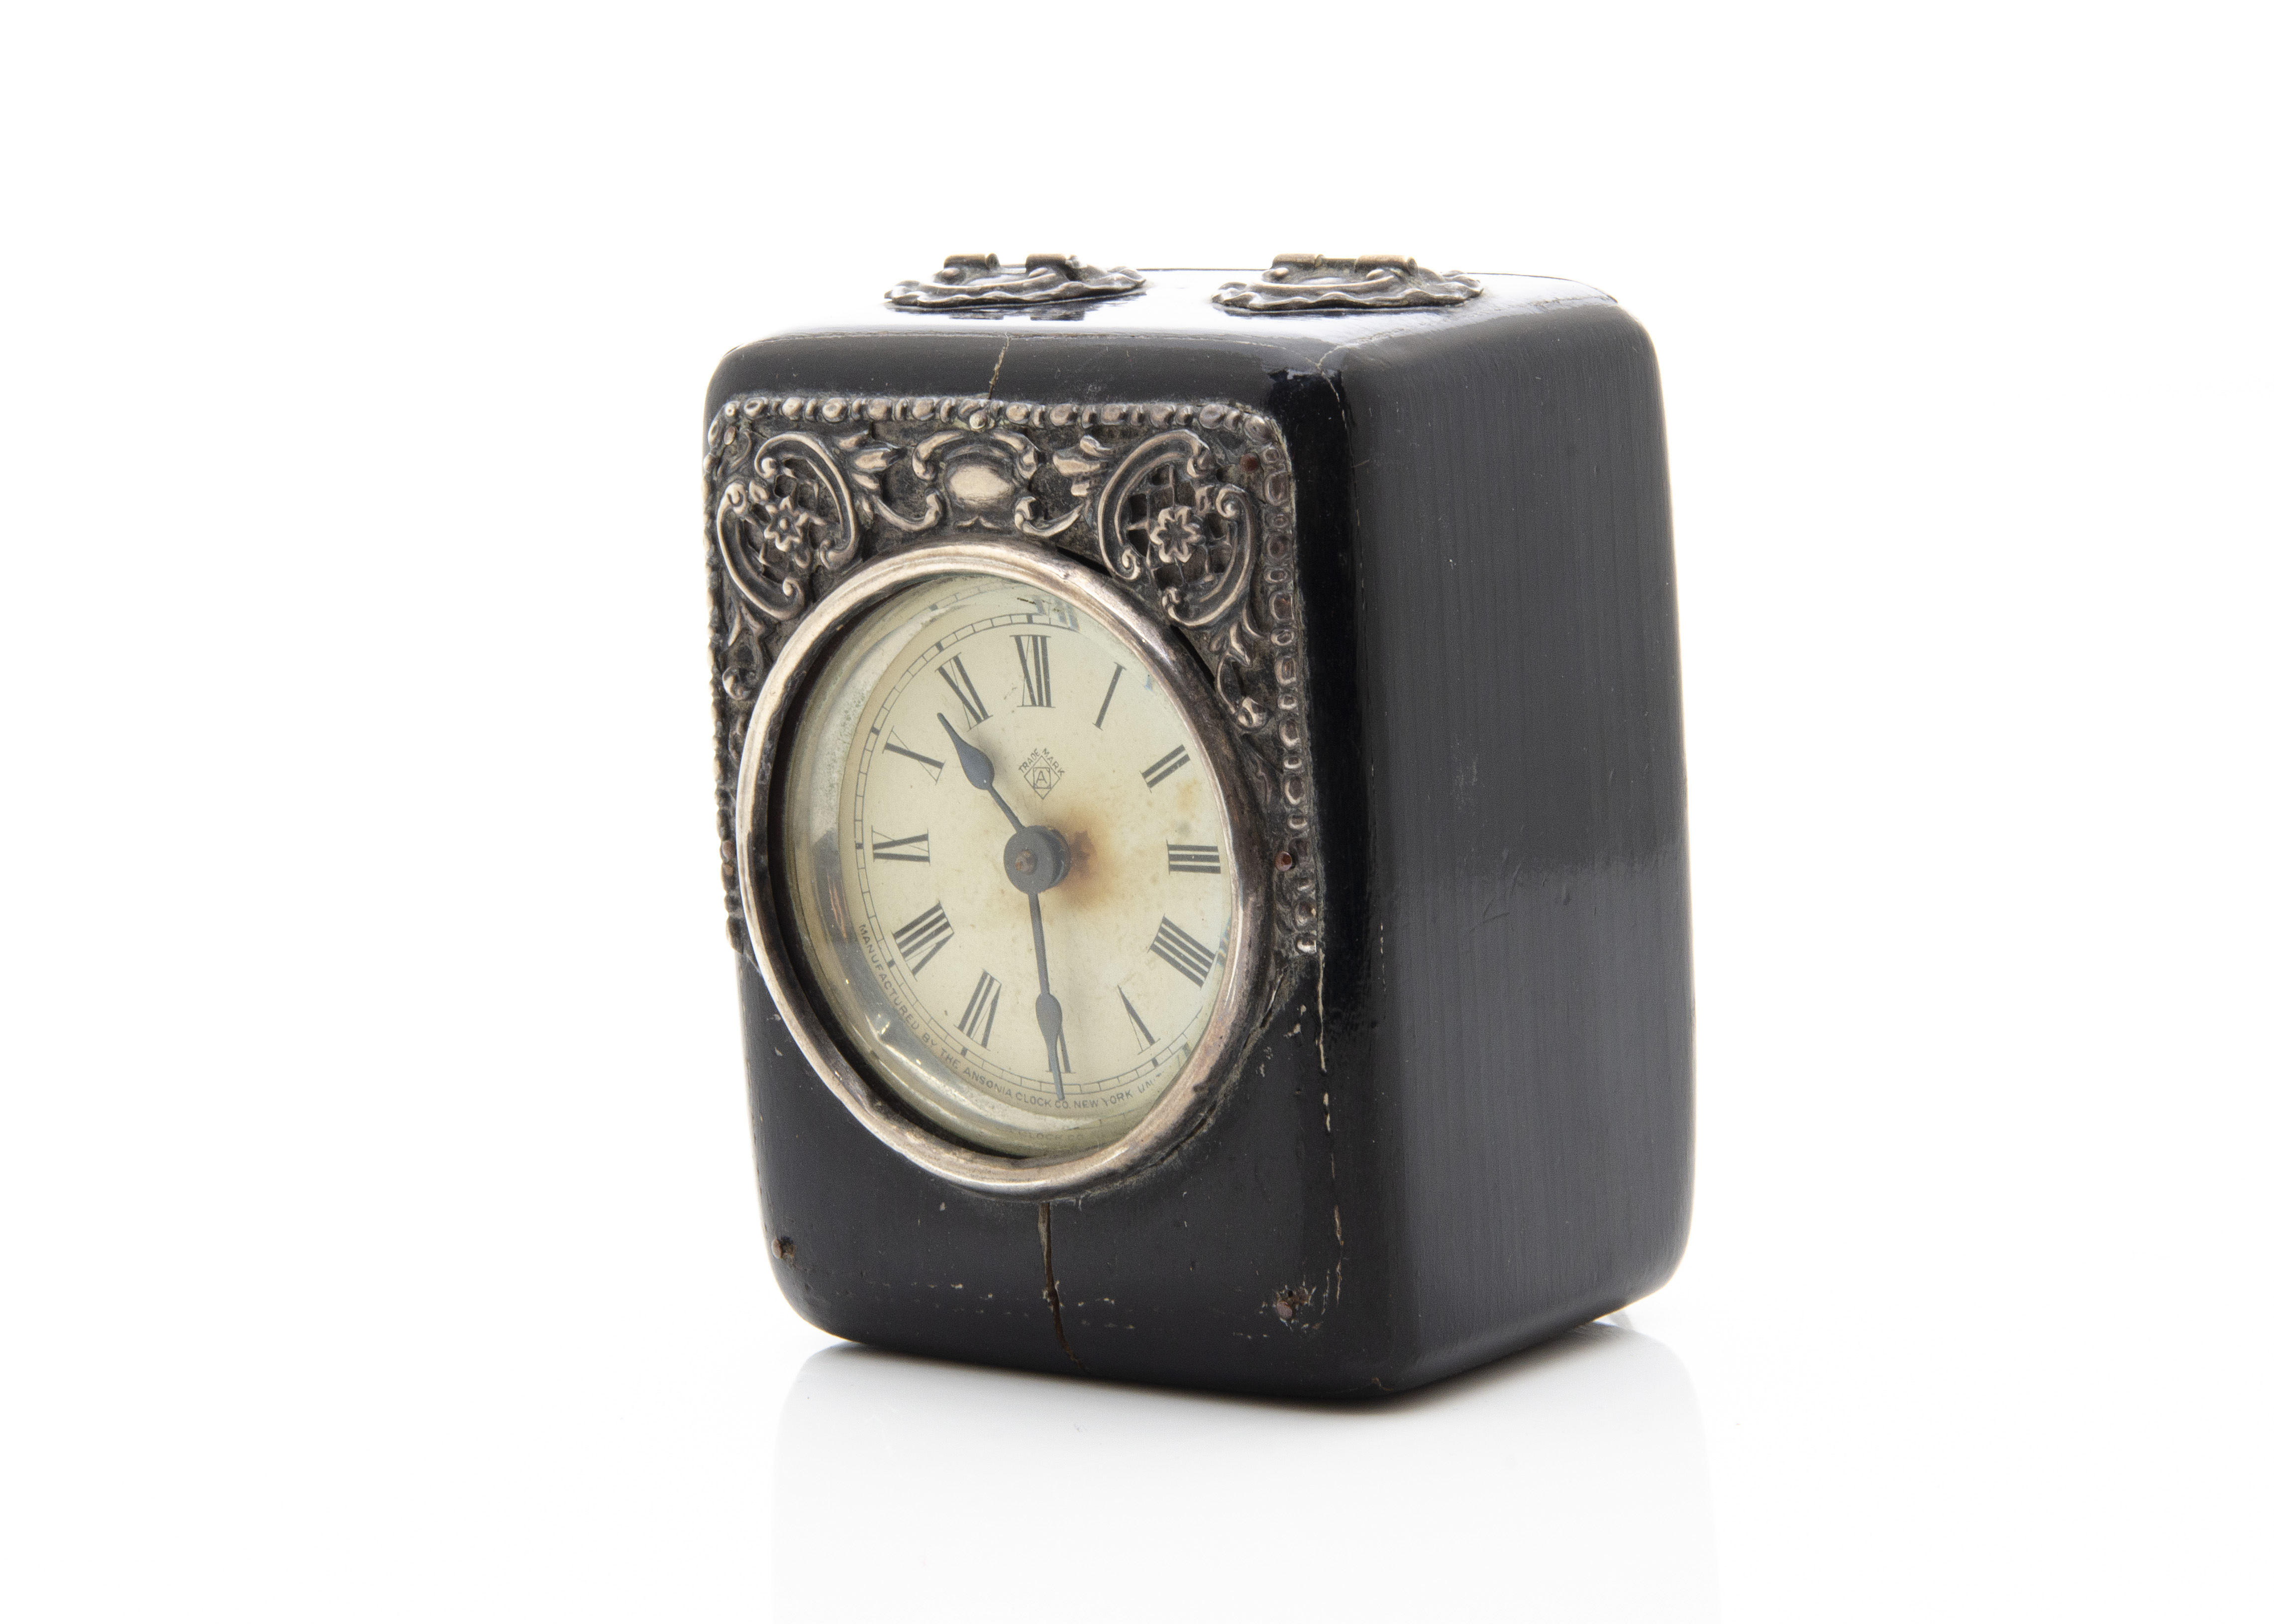 Lot 261 - An American travel clock, the ebonised case with silver mounts, damaged to lower front, crack to